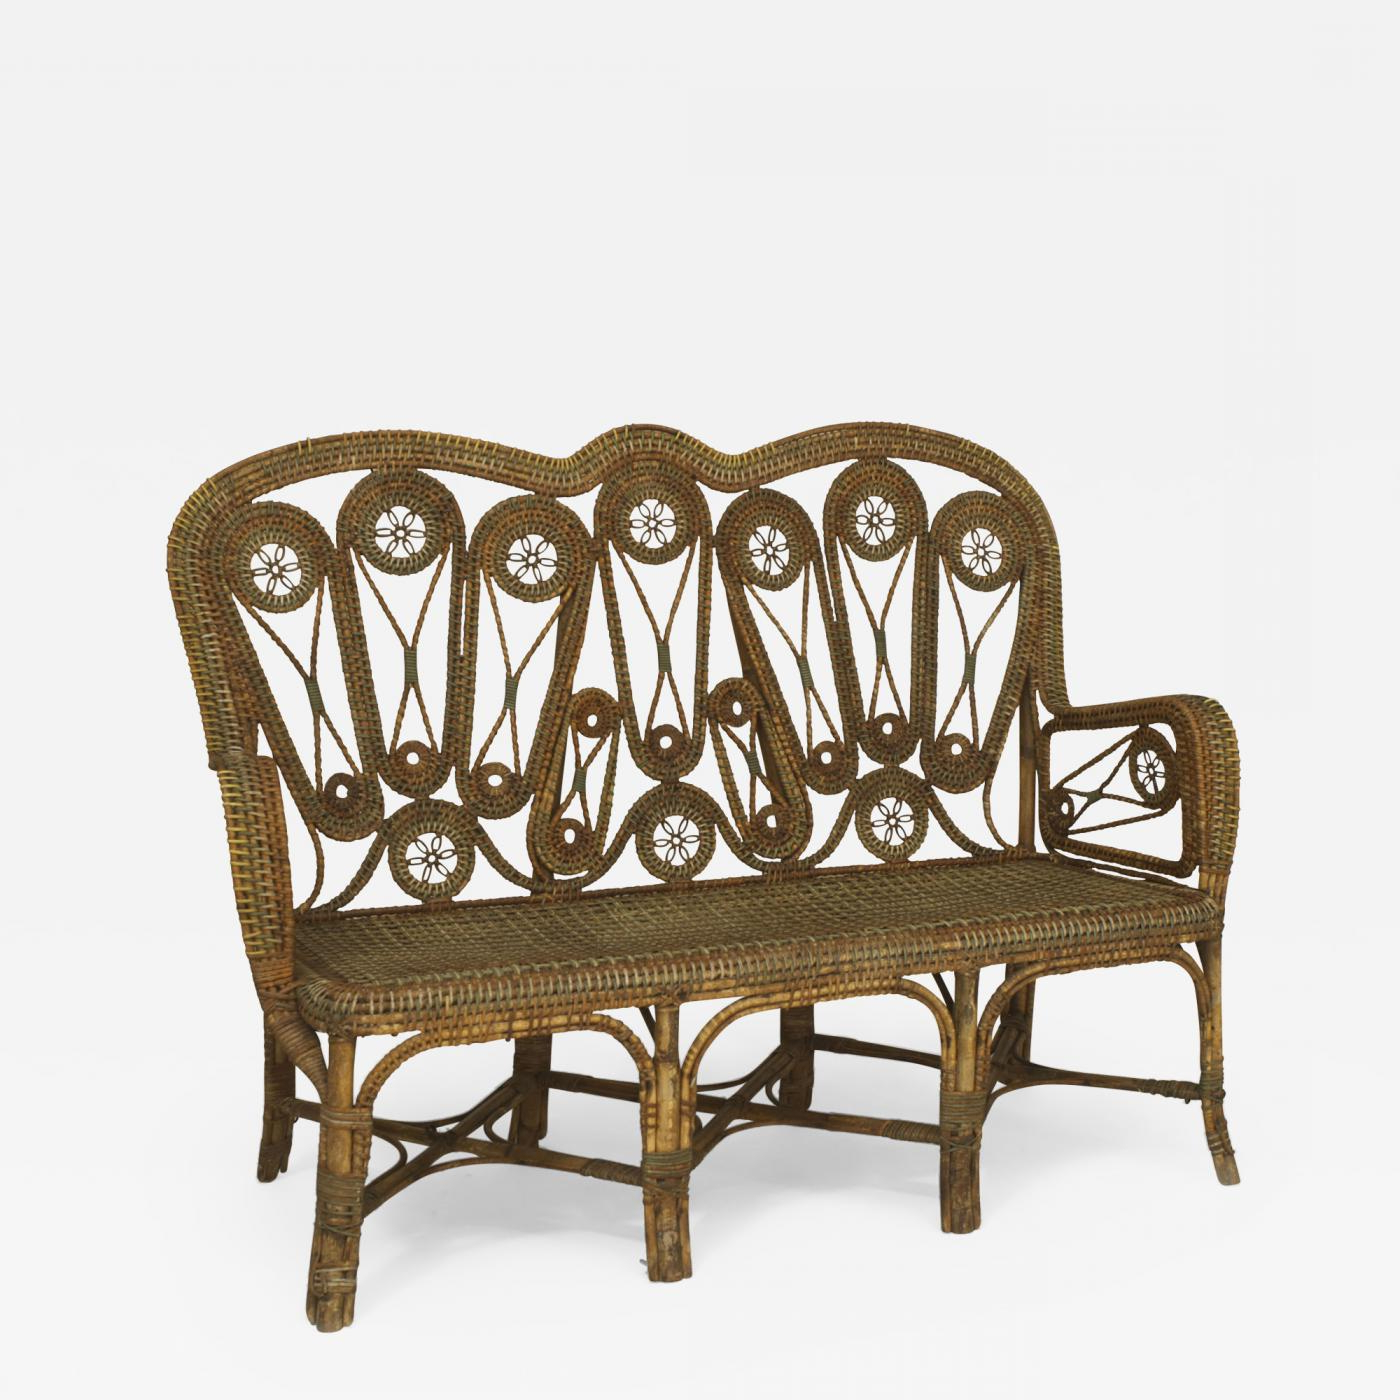 Wicker Loveseats Pertaining To Most Recent Perret Et Vibert – French Victorian Natural Wicker Loveseats (View 18 of 20)